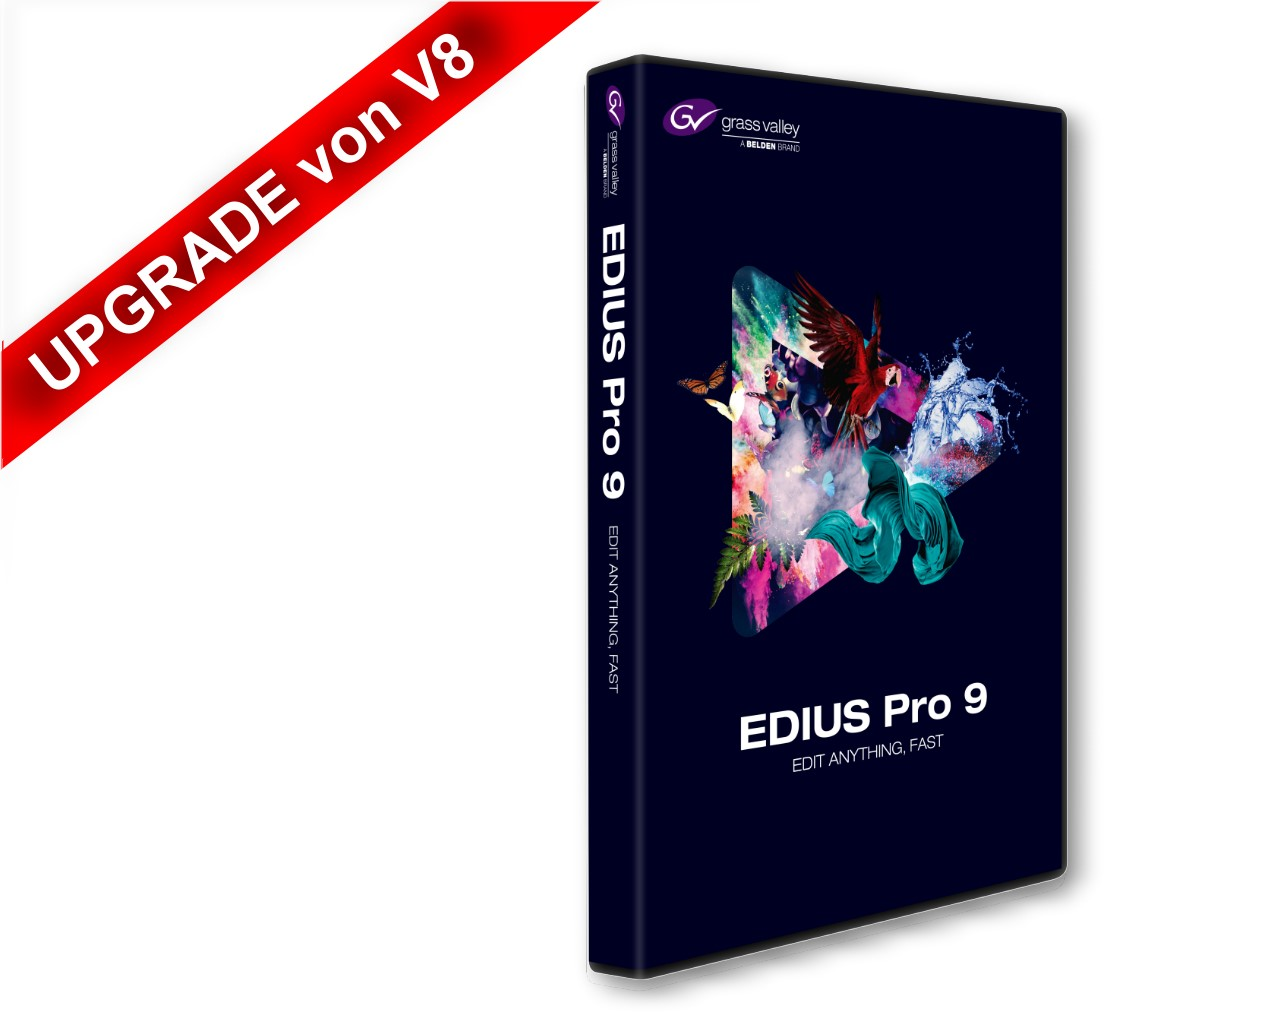 Artikelfoto 1 Grass Valley EDIUS Pro 9 Upgrade von Version 8